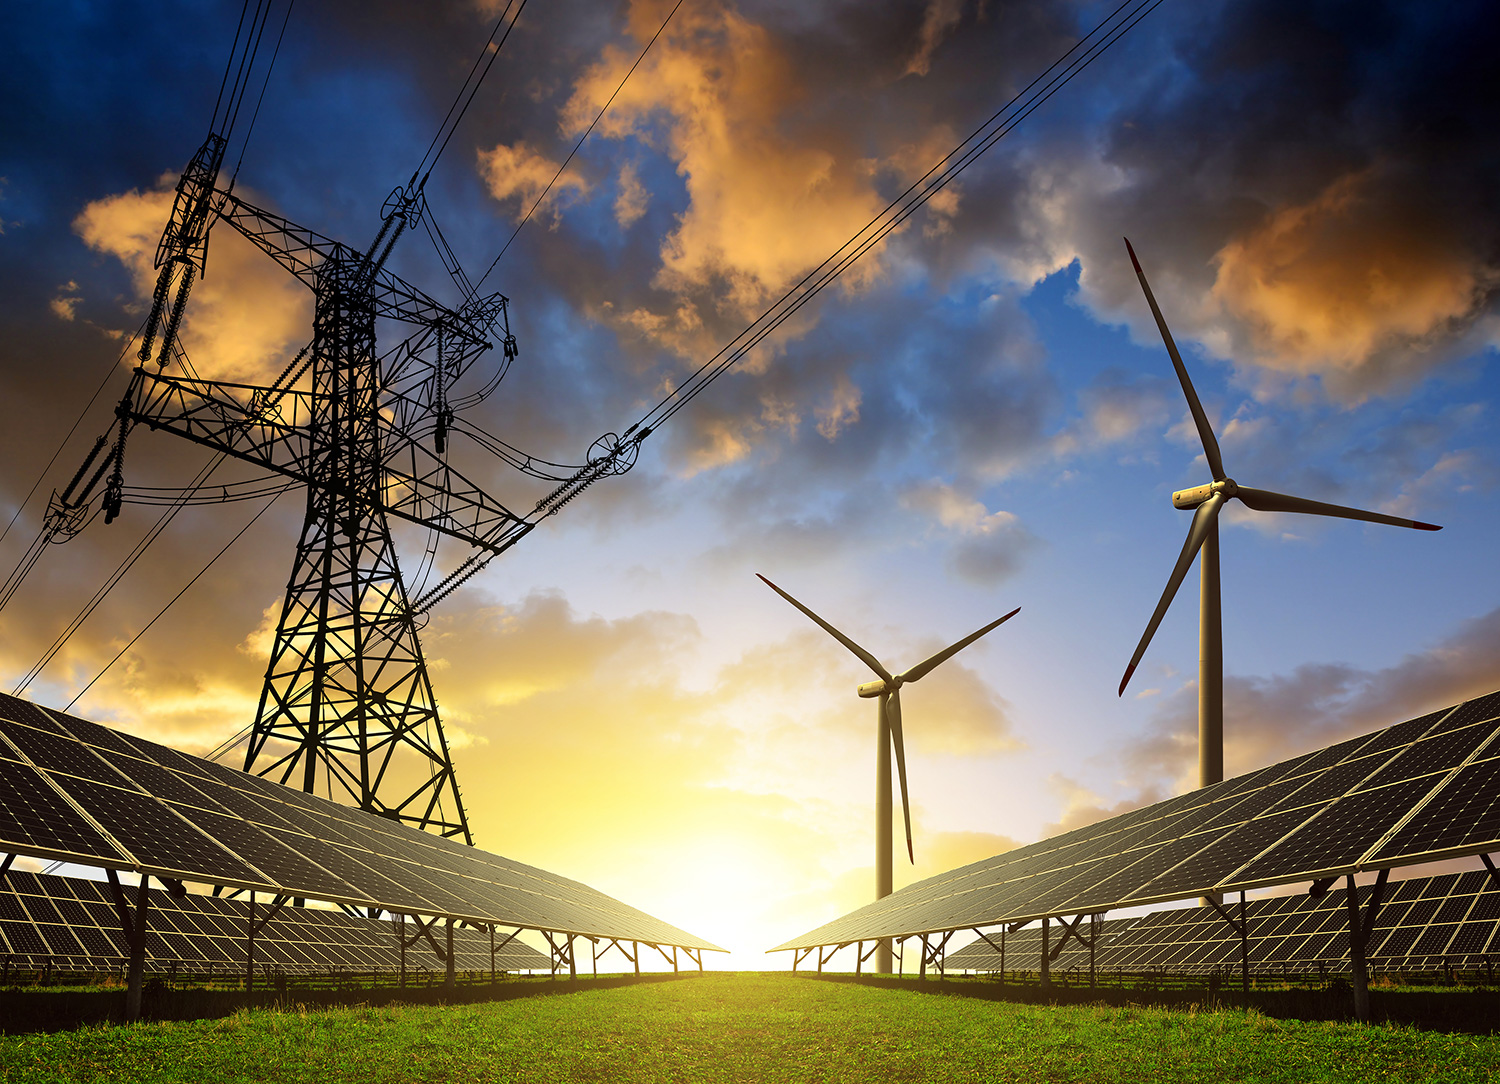 Solar panels, wind turbines, and transmission lines